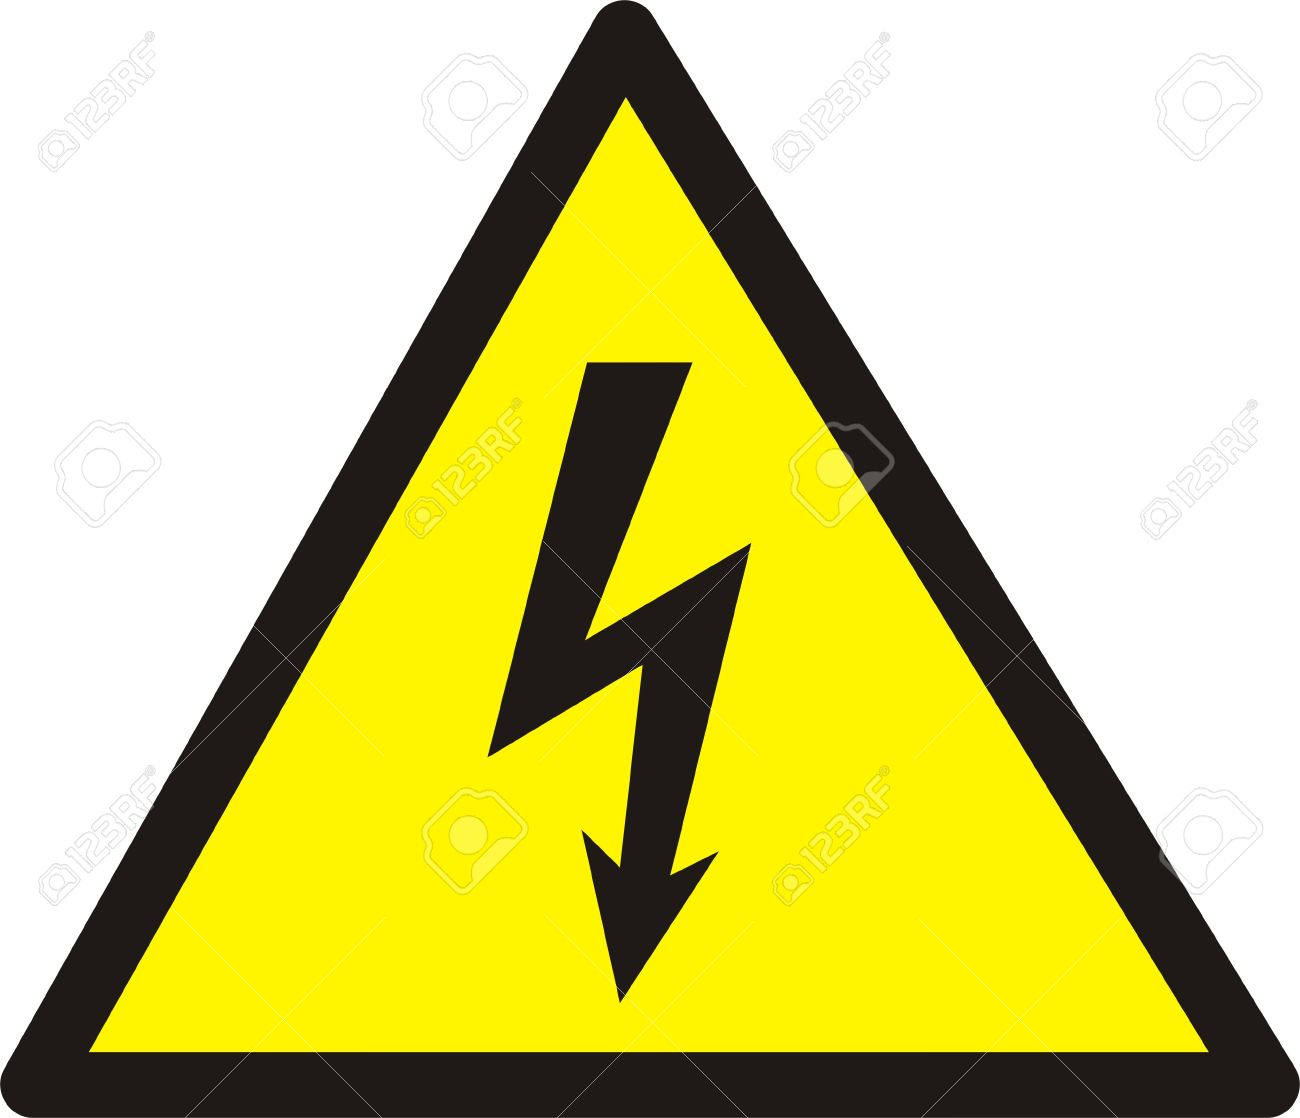 Electric current clipart - Clipground